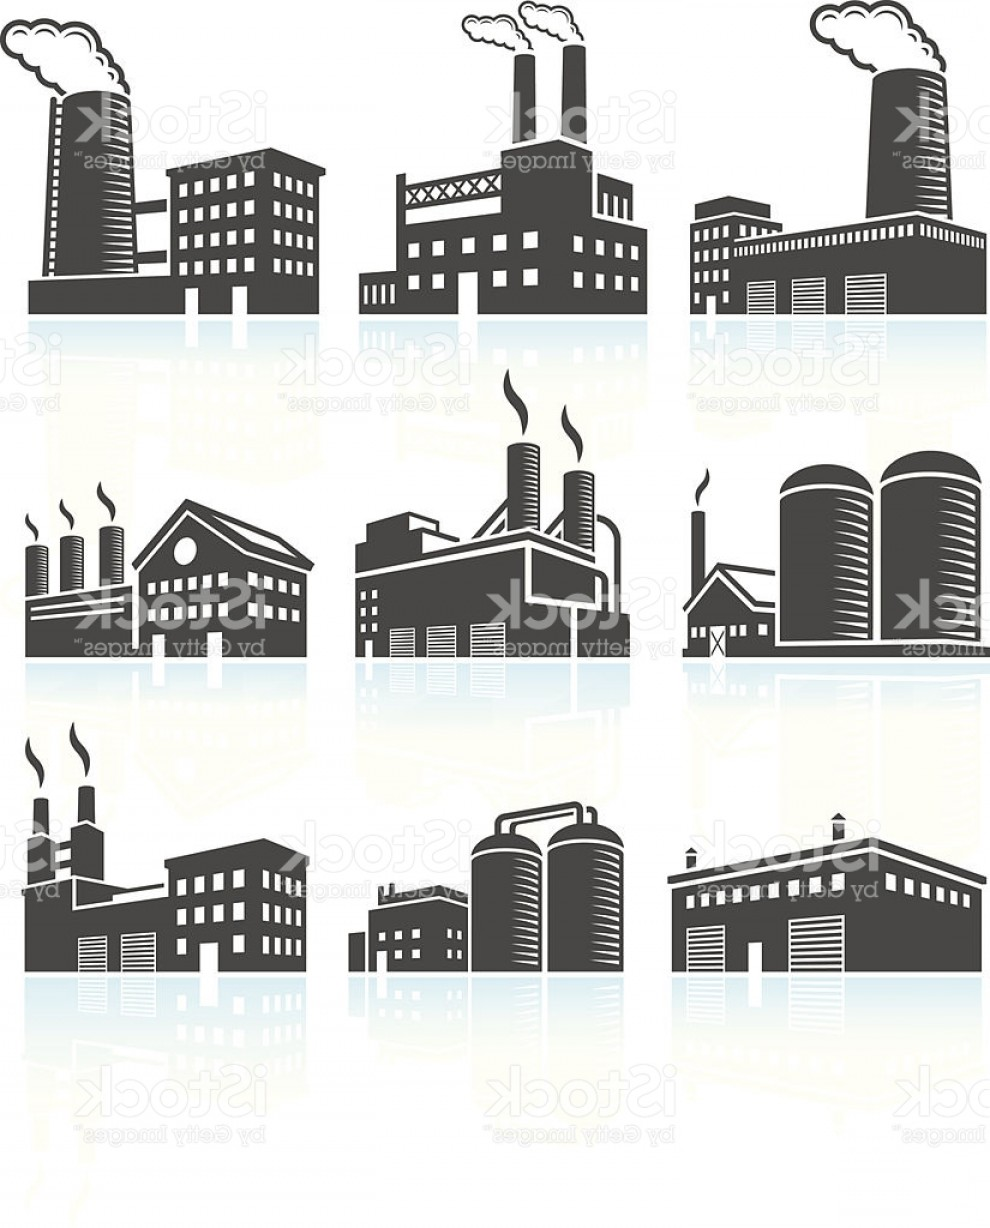 Industrial Vector Art: Factory Industrial Power Plant Buildings Black White Icon Set Gm